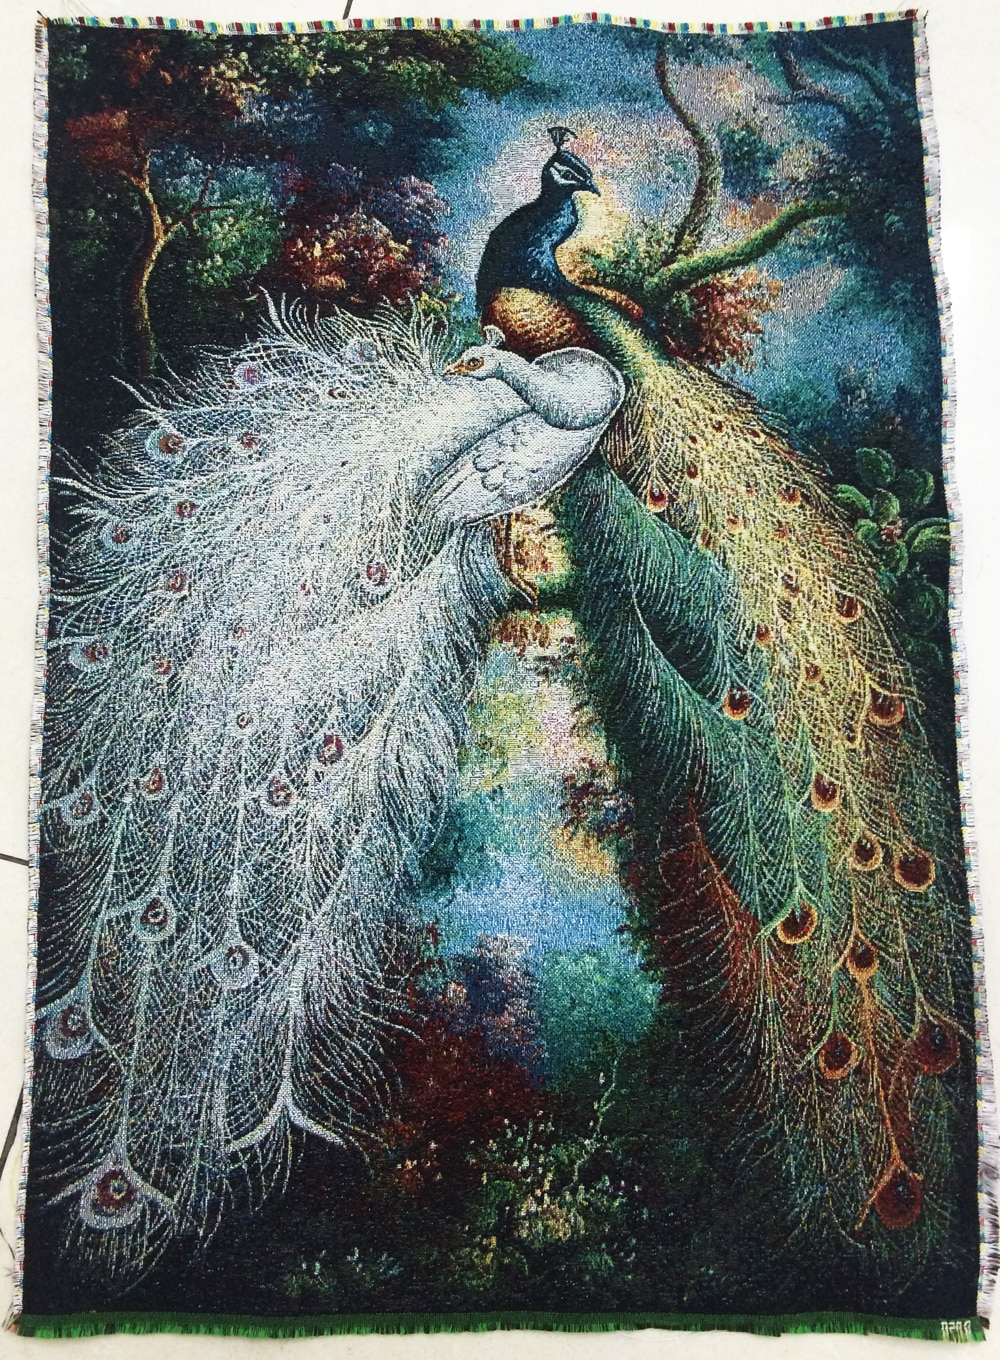 Blended Fabric Peacock European Tapestries With Well Known Free Shipping Hot Sales Middle Size Gobelin Tapestry, Beautiful Peacock Fabric Picture,wall Hanging Fabric Pictures (View 8 of 20)